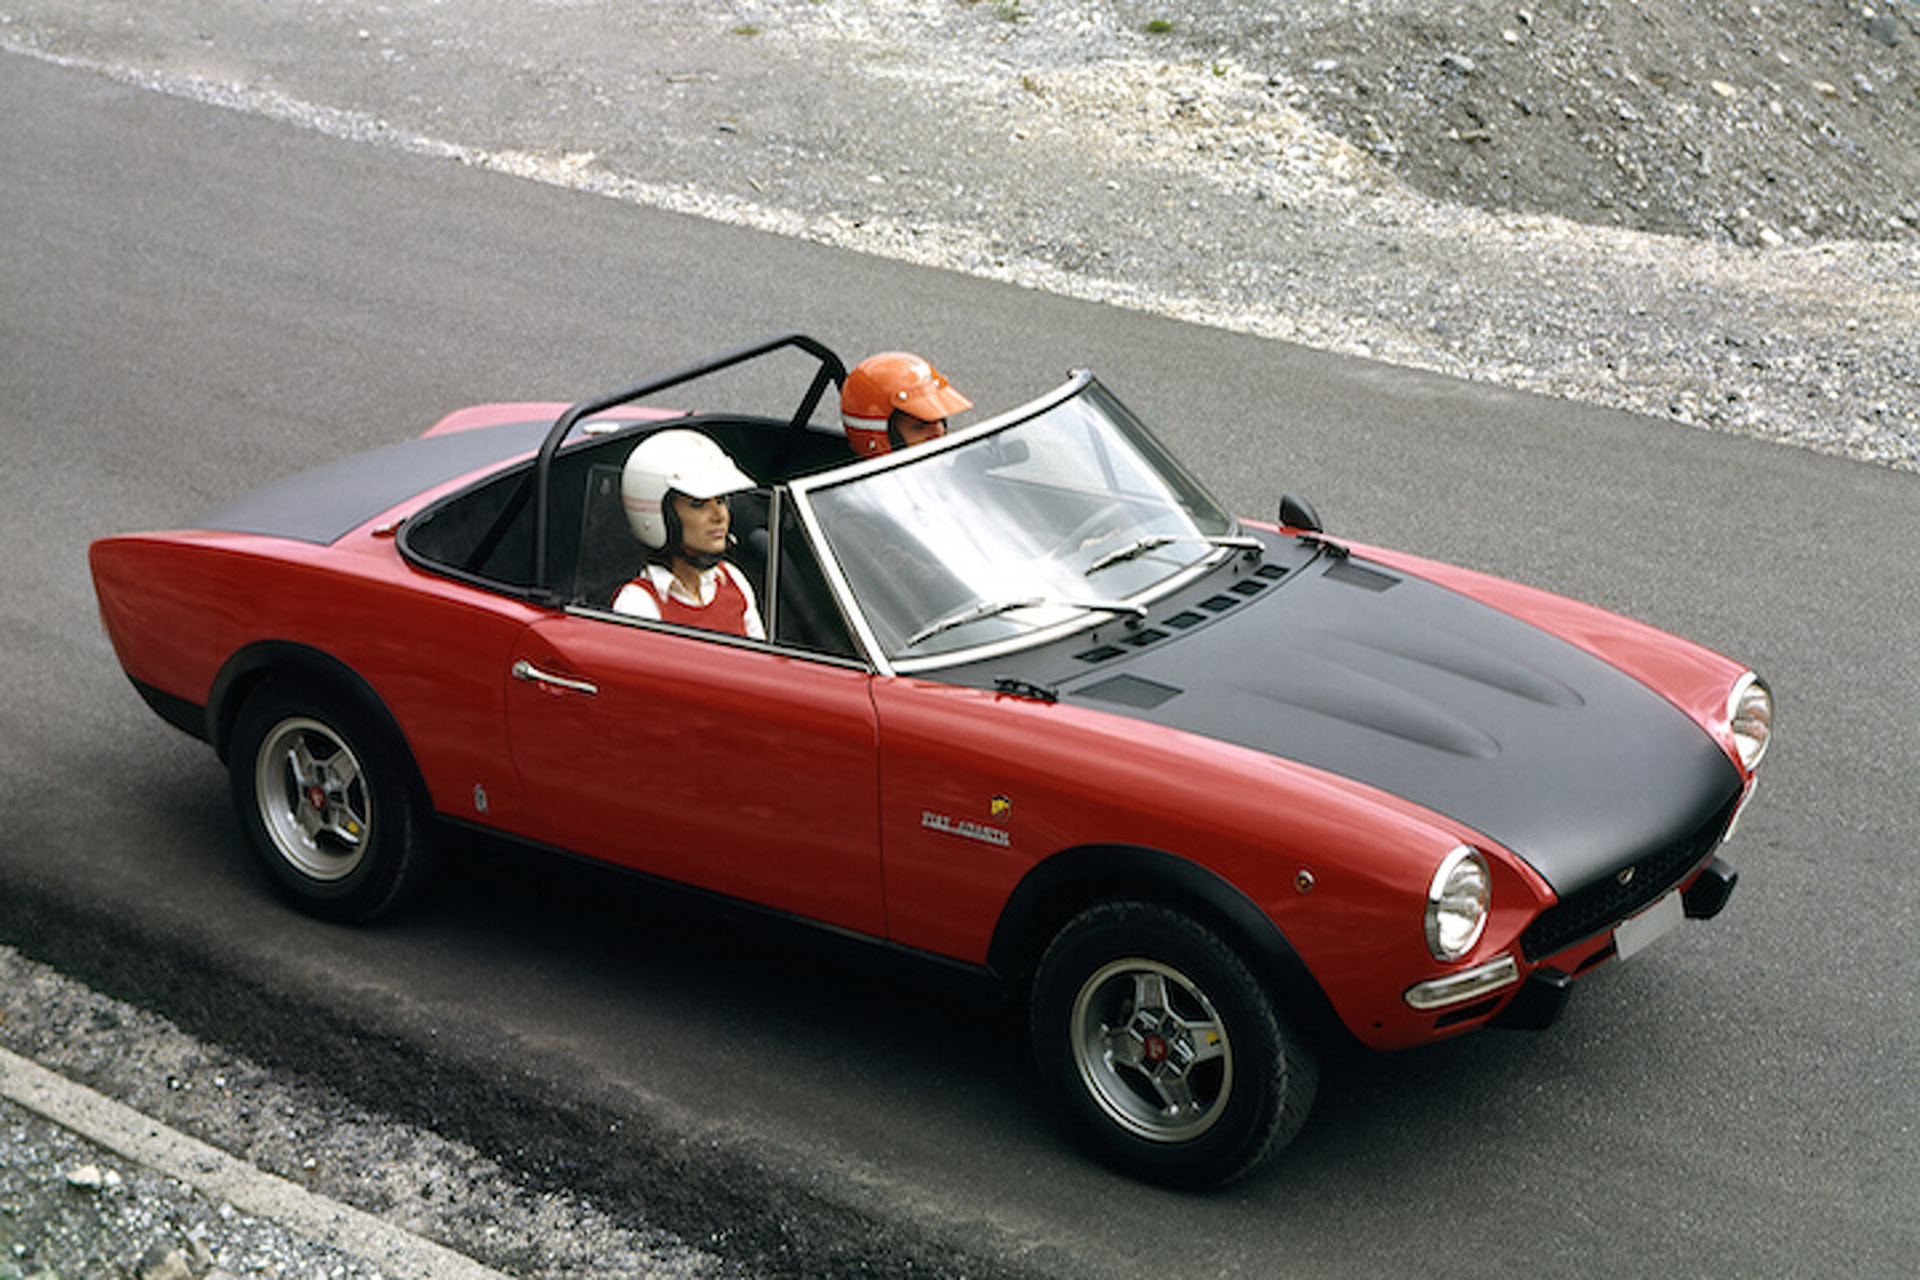 Why We Love the Original Fiat 124 Spider